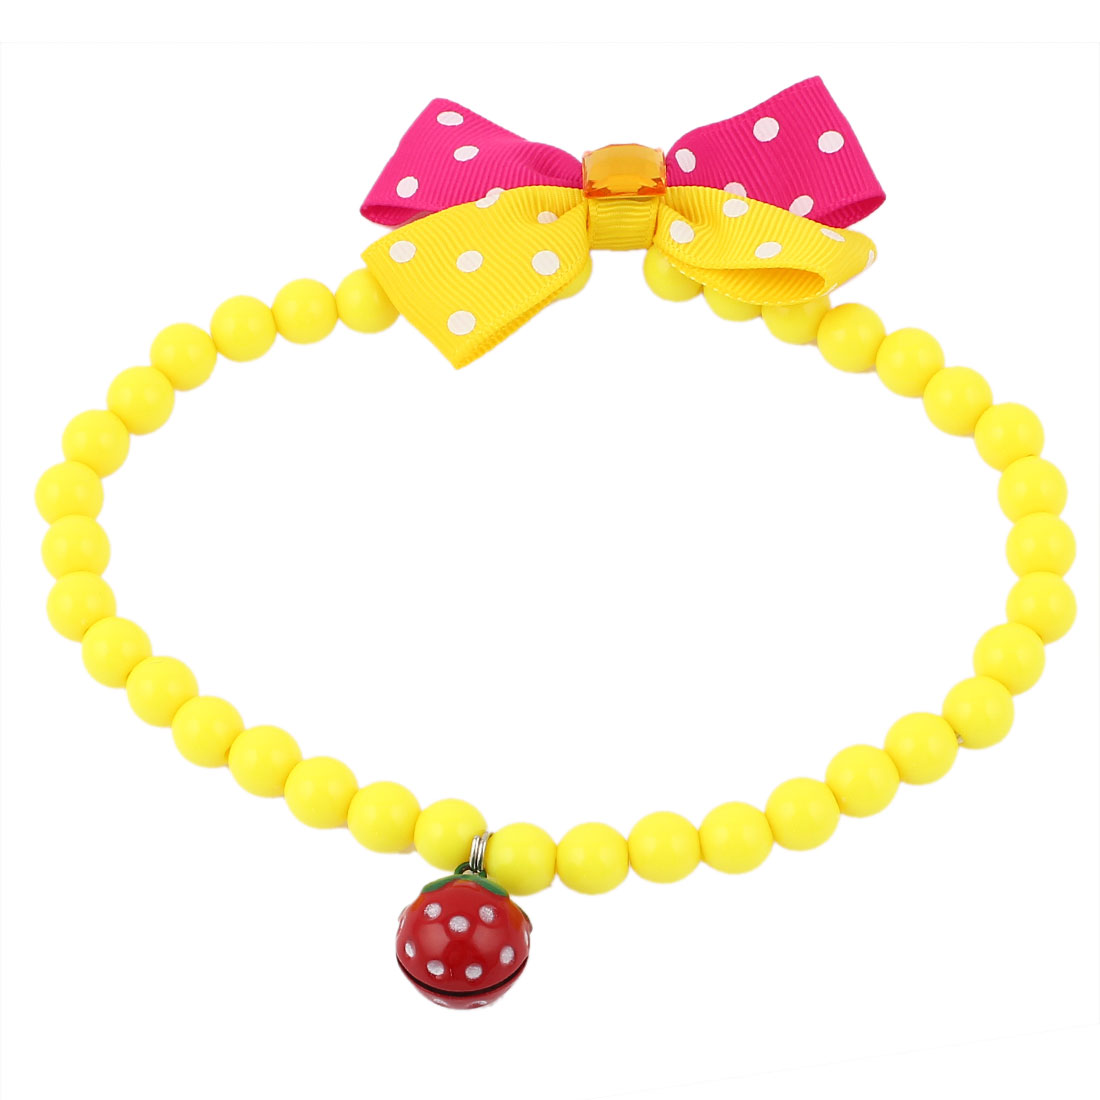 Faux Crystal Bowtie Accent Pet Dog Plastic Beads Collar Necklace Yellow Fuchsia L